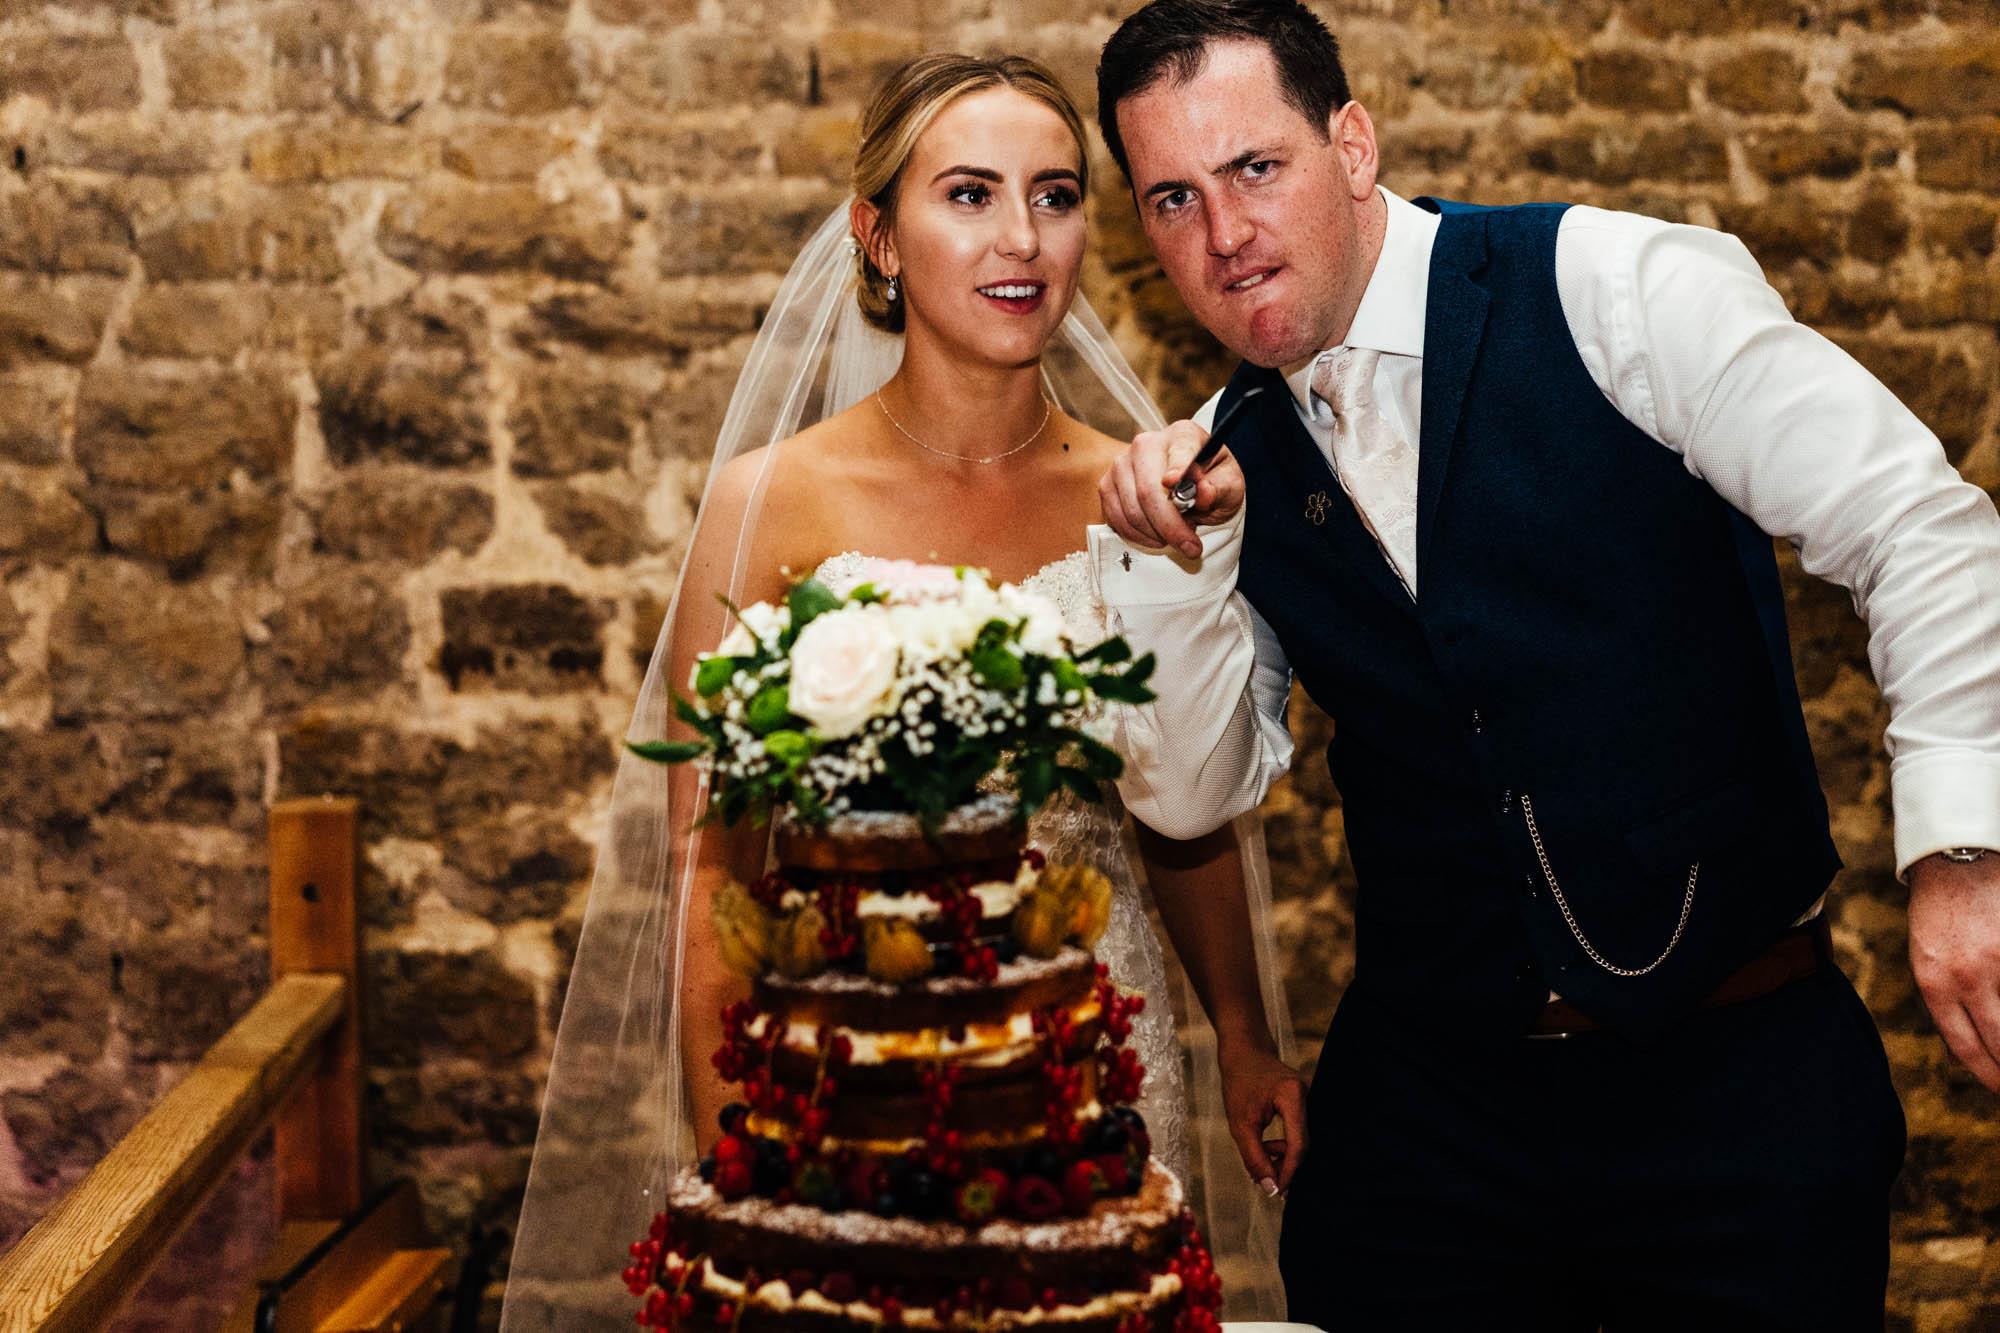 wedding-at-the-barns-at-hunsbury-hill-72